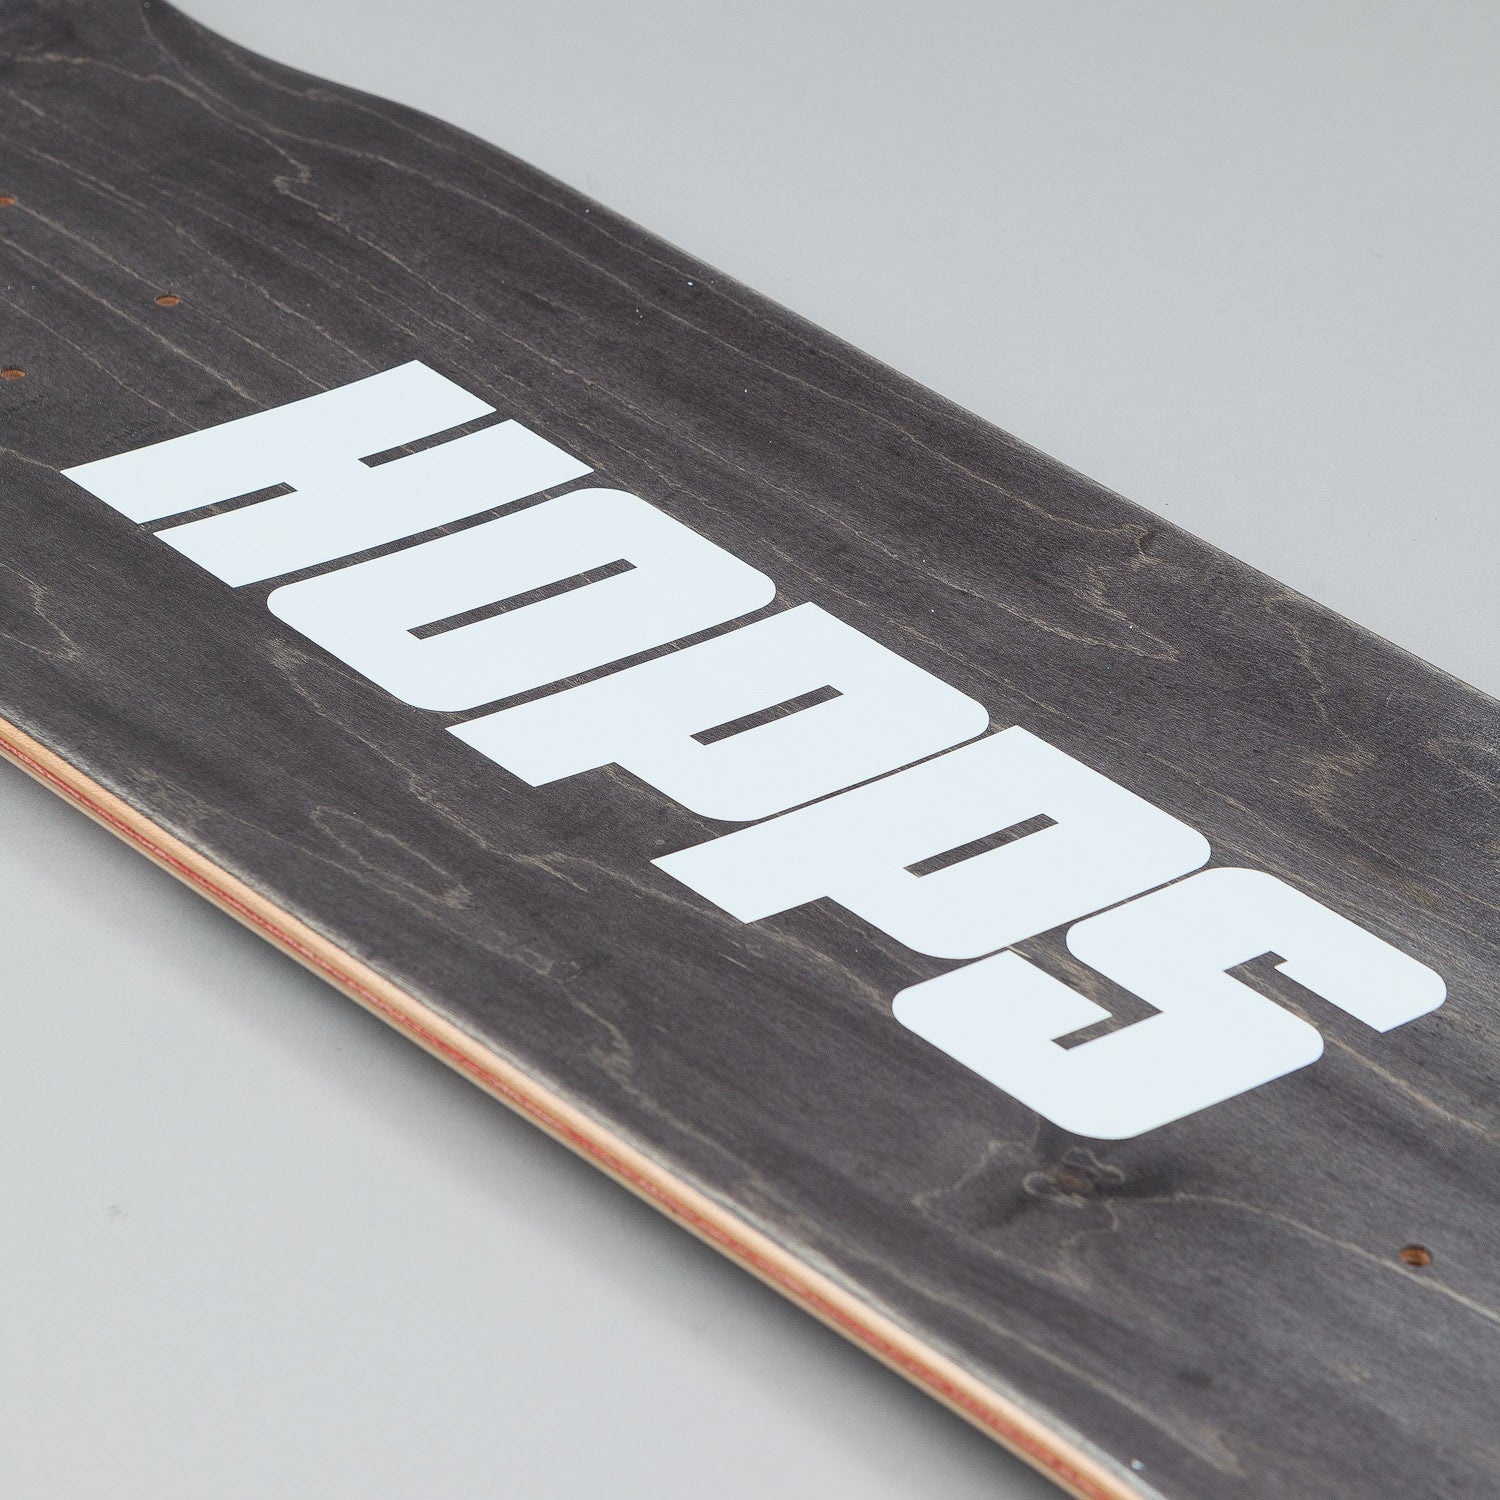 Hopps Concrete Jungle Deck 1 of 2 - 8.25""